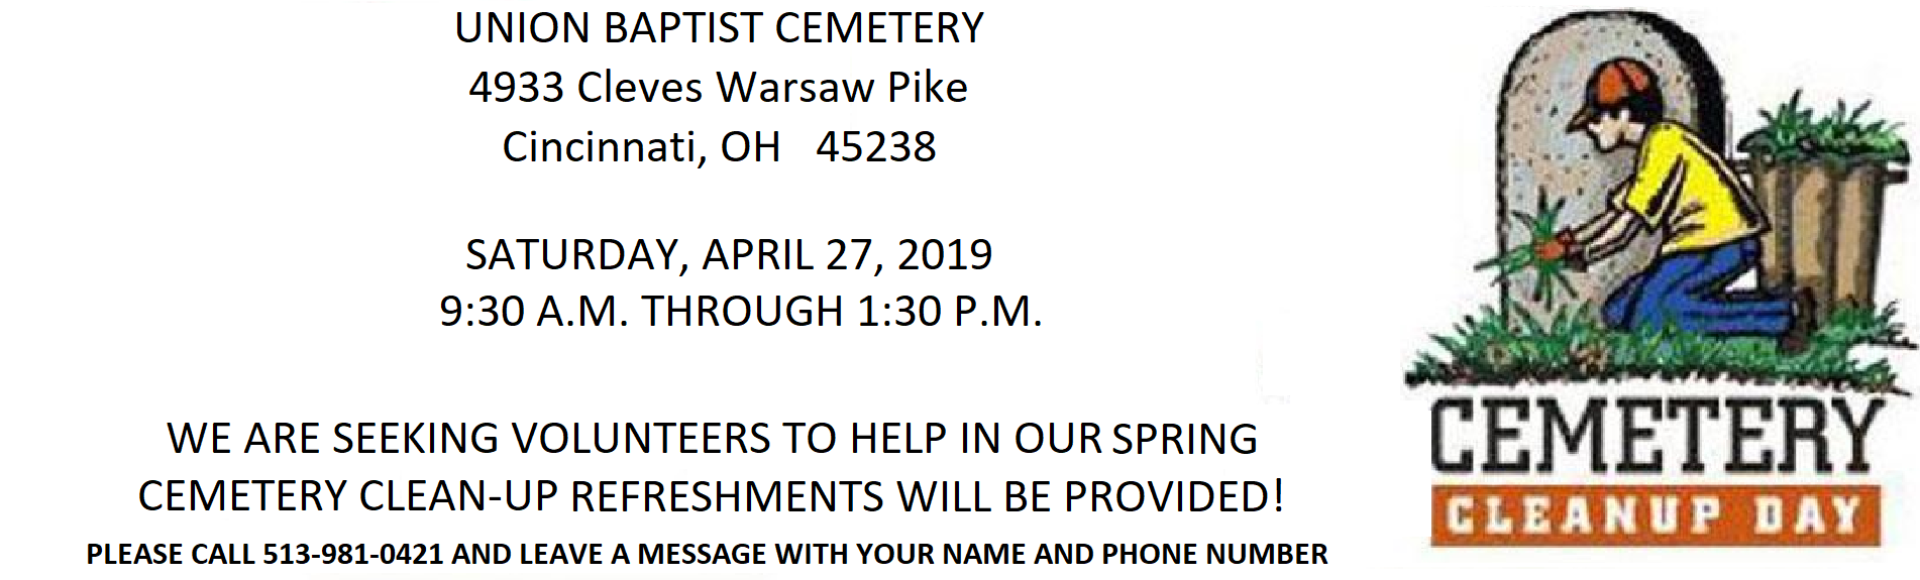 2019 Cemetery Cleanup II